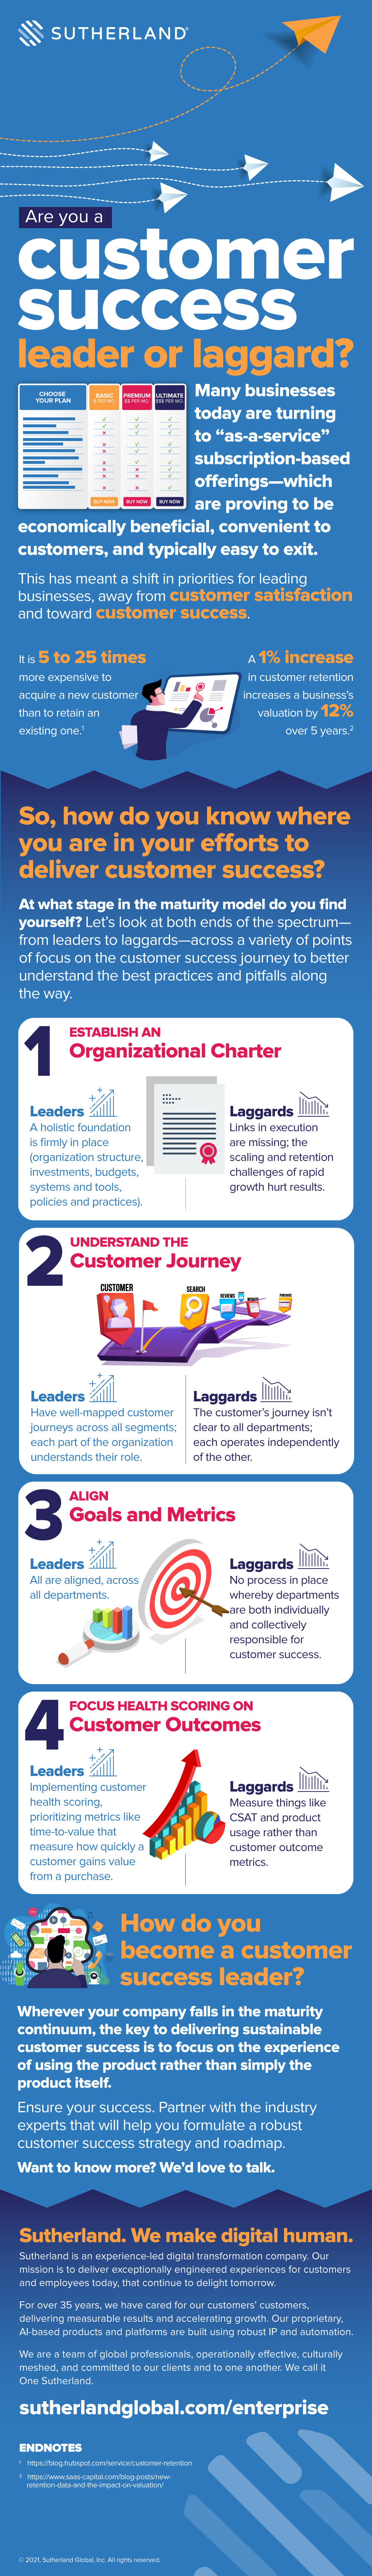 Are You A Customer Success Leader Or Laggard?